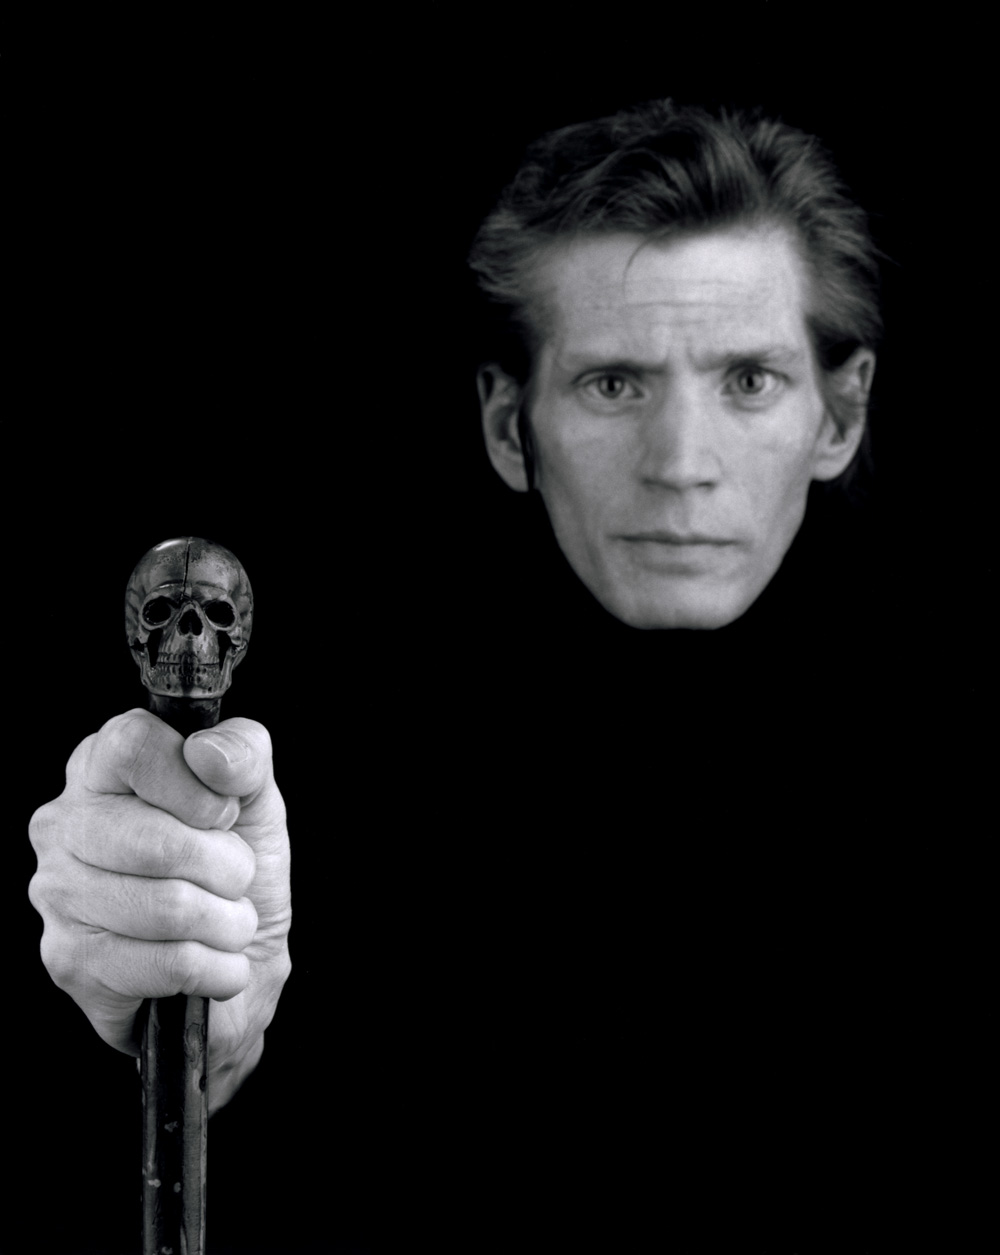 Robert Mapplethorpe Önarckép / Self Portrait, 1988 © Robert Mapplethorpe Foundation. Used by permission.